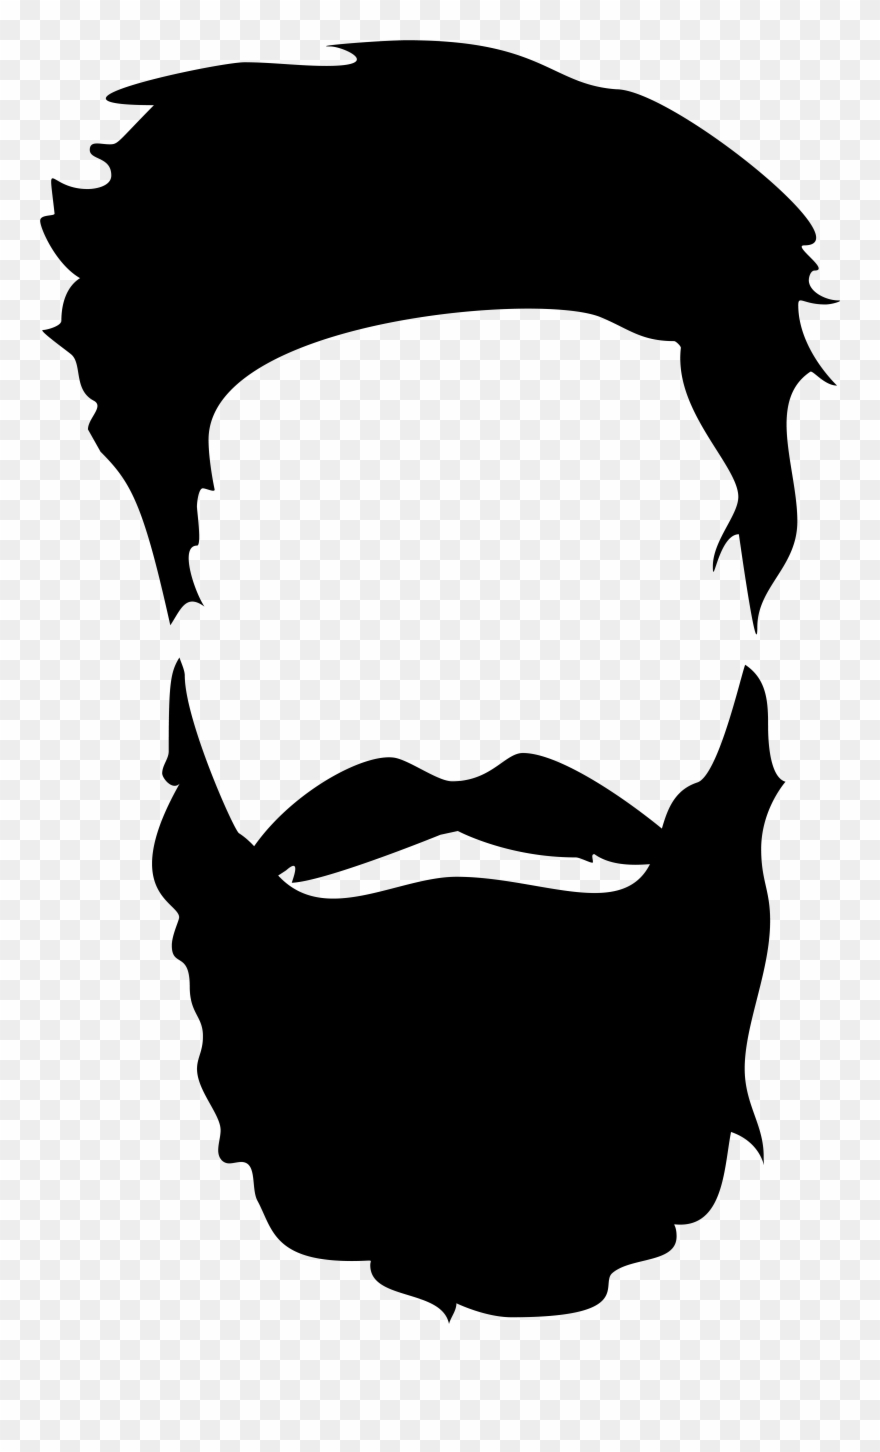 Beard real. Hair png clip art